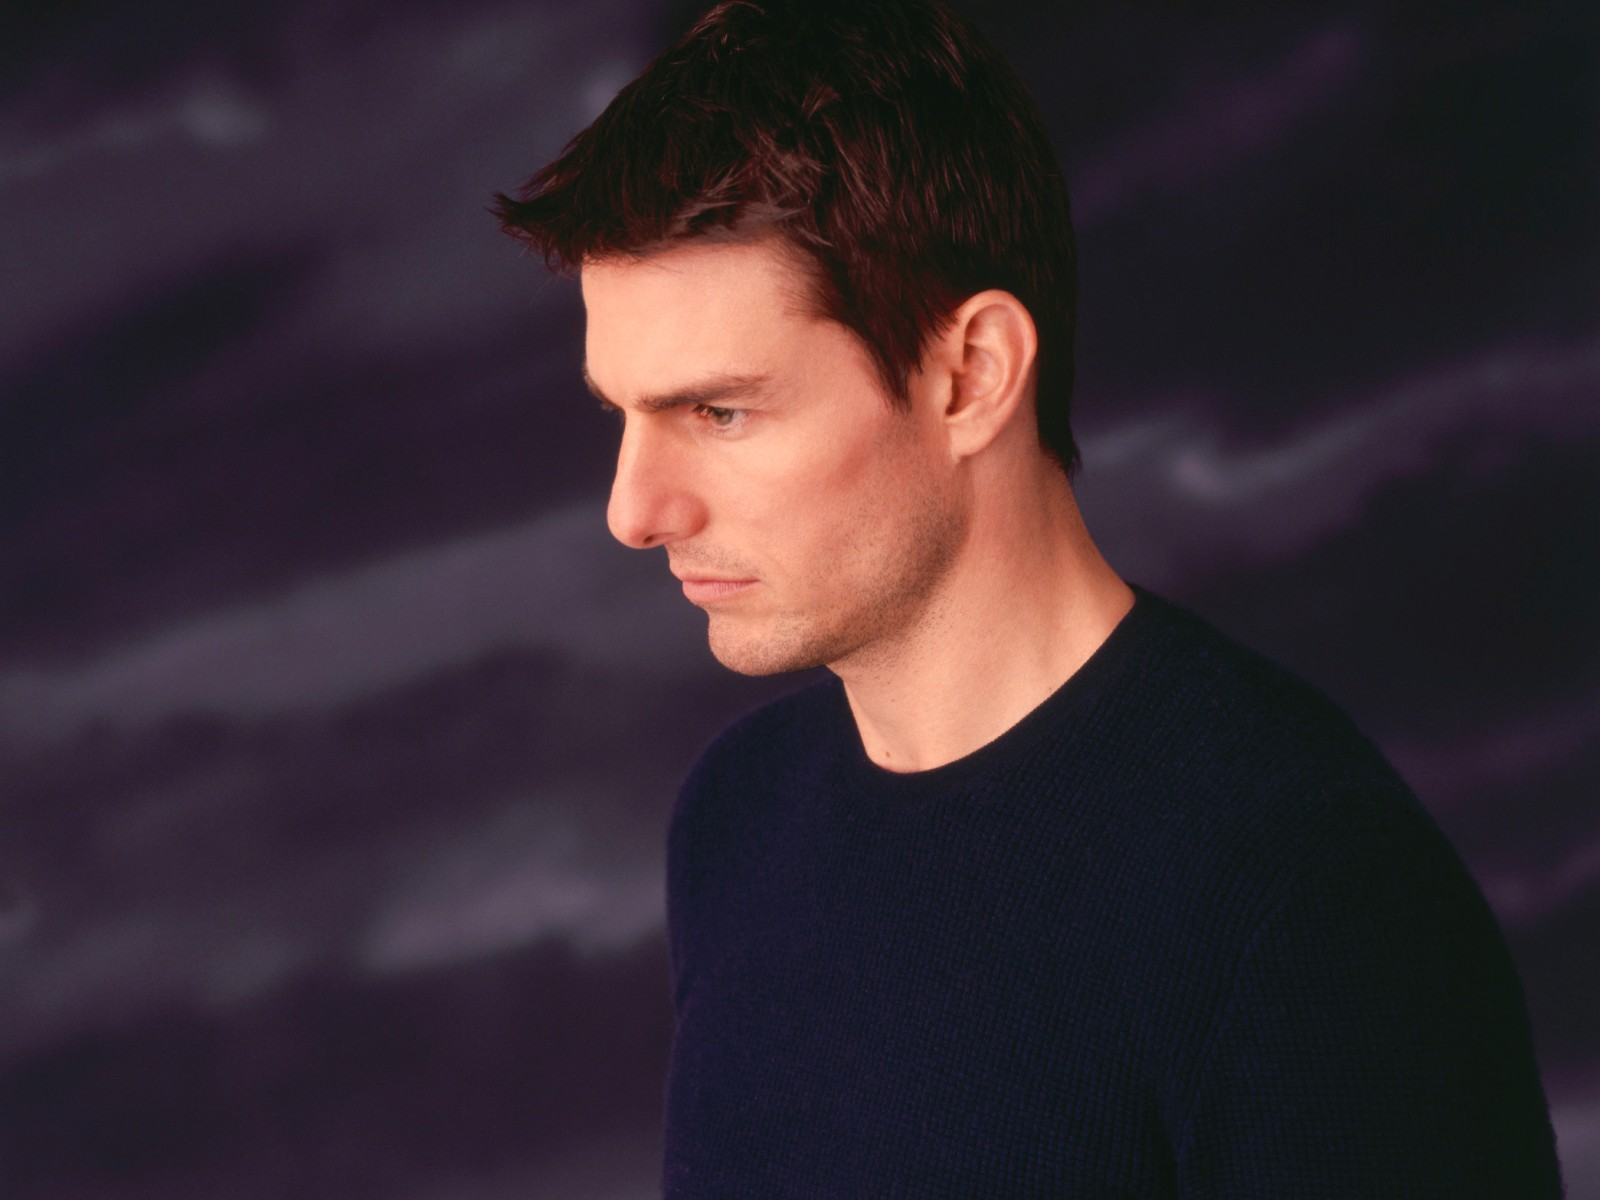 Tom Cruise Wallpapers 1600x1200